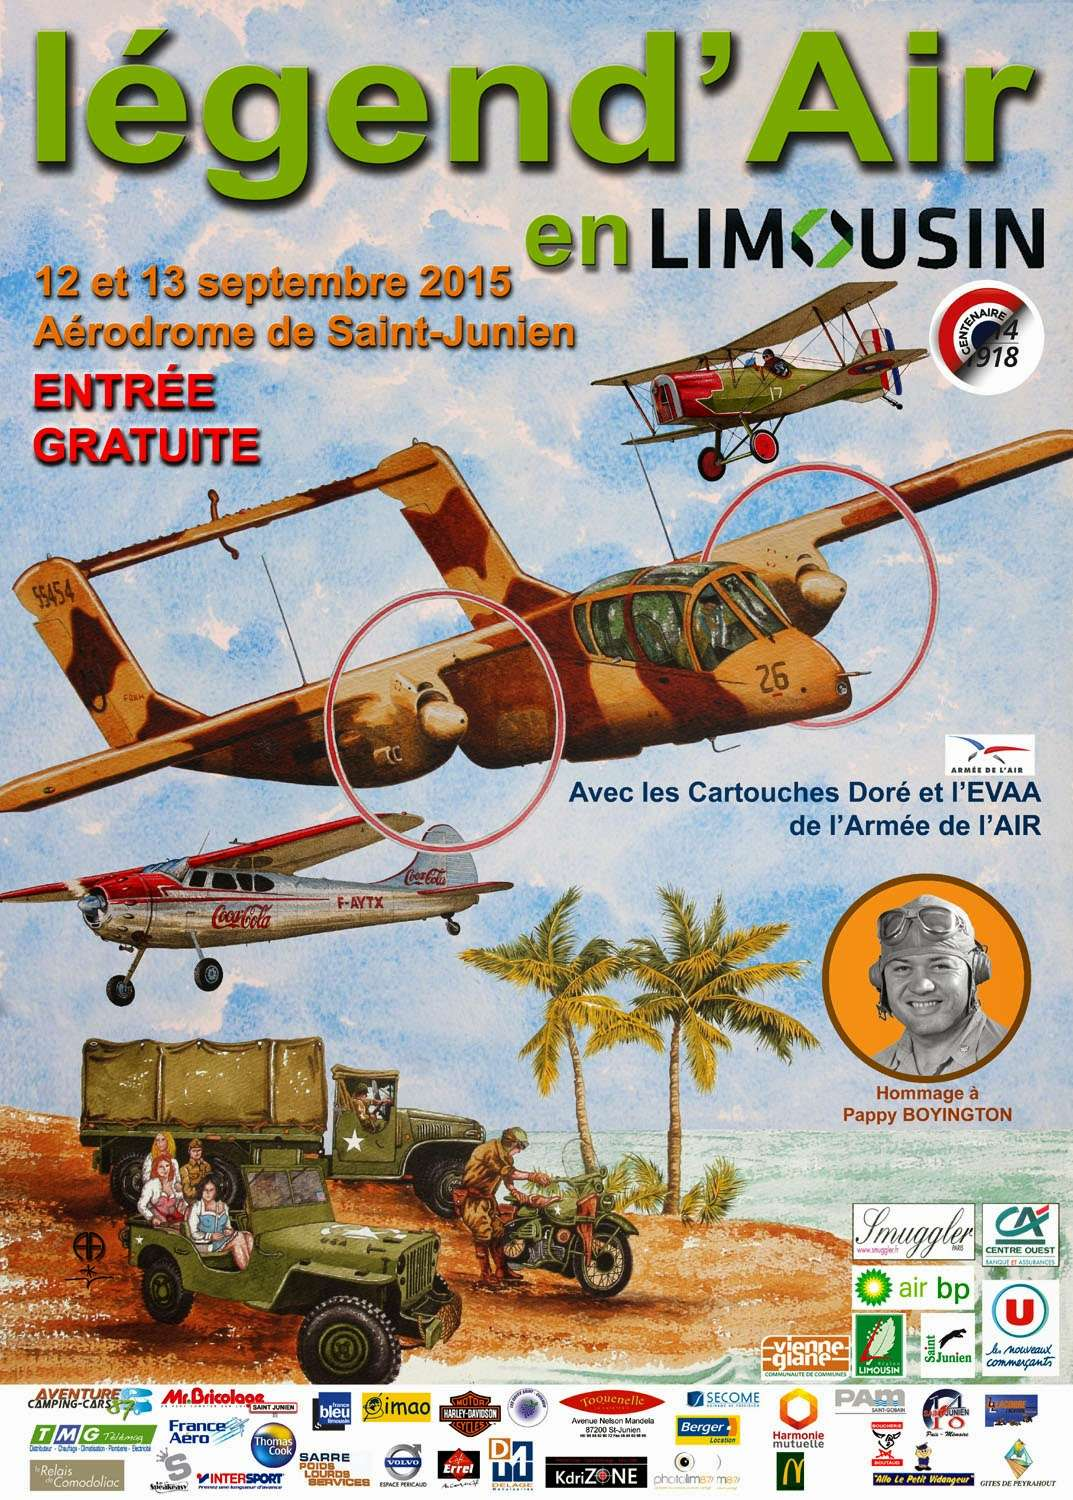 Aerodrome de Saint-Junien 2015,legendairenlimousin.blogspot.fr,Légend'Air en Limousin 2015, meeting aériens 2015, meeting aeriens 2015, French Airshow 2015